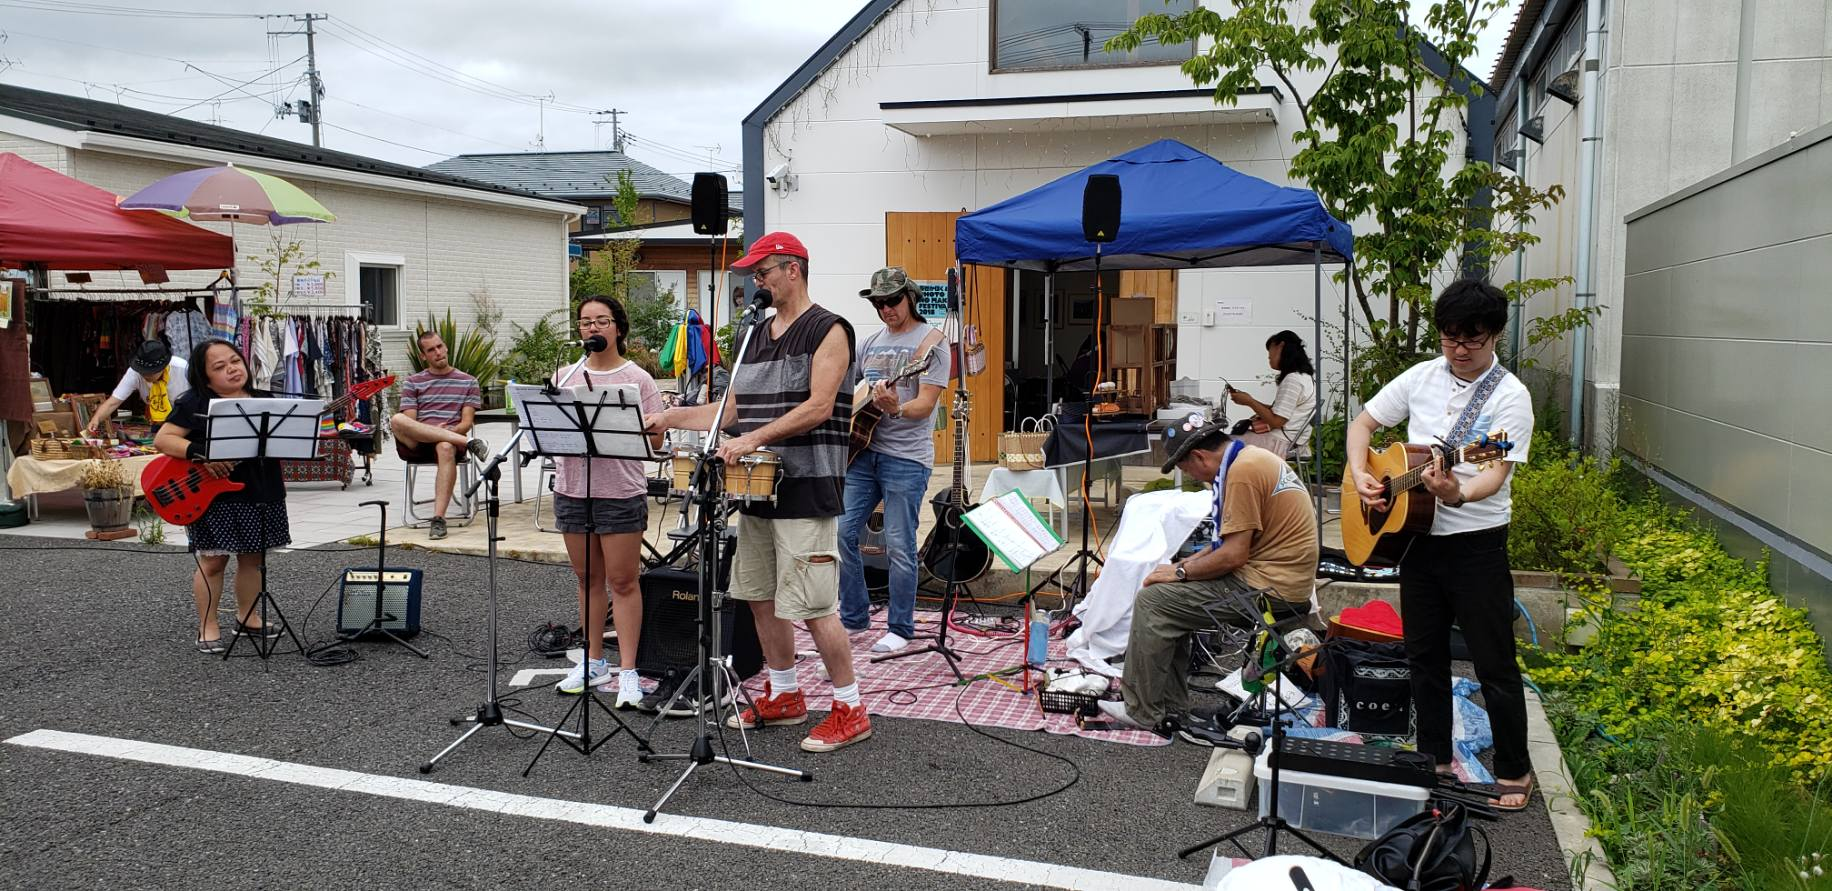 (Left to Right) missionary Cherry, Hannah, misssionary Rich, pastor Billy (with hat) then on the left two Japanese young men that were playing music before the team arrived who joined them.